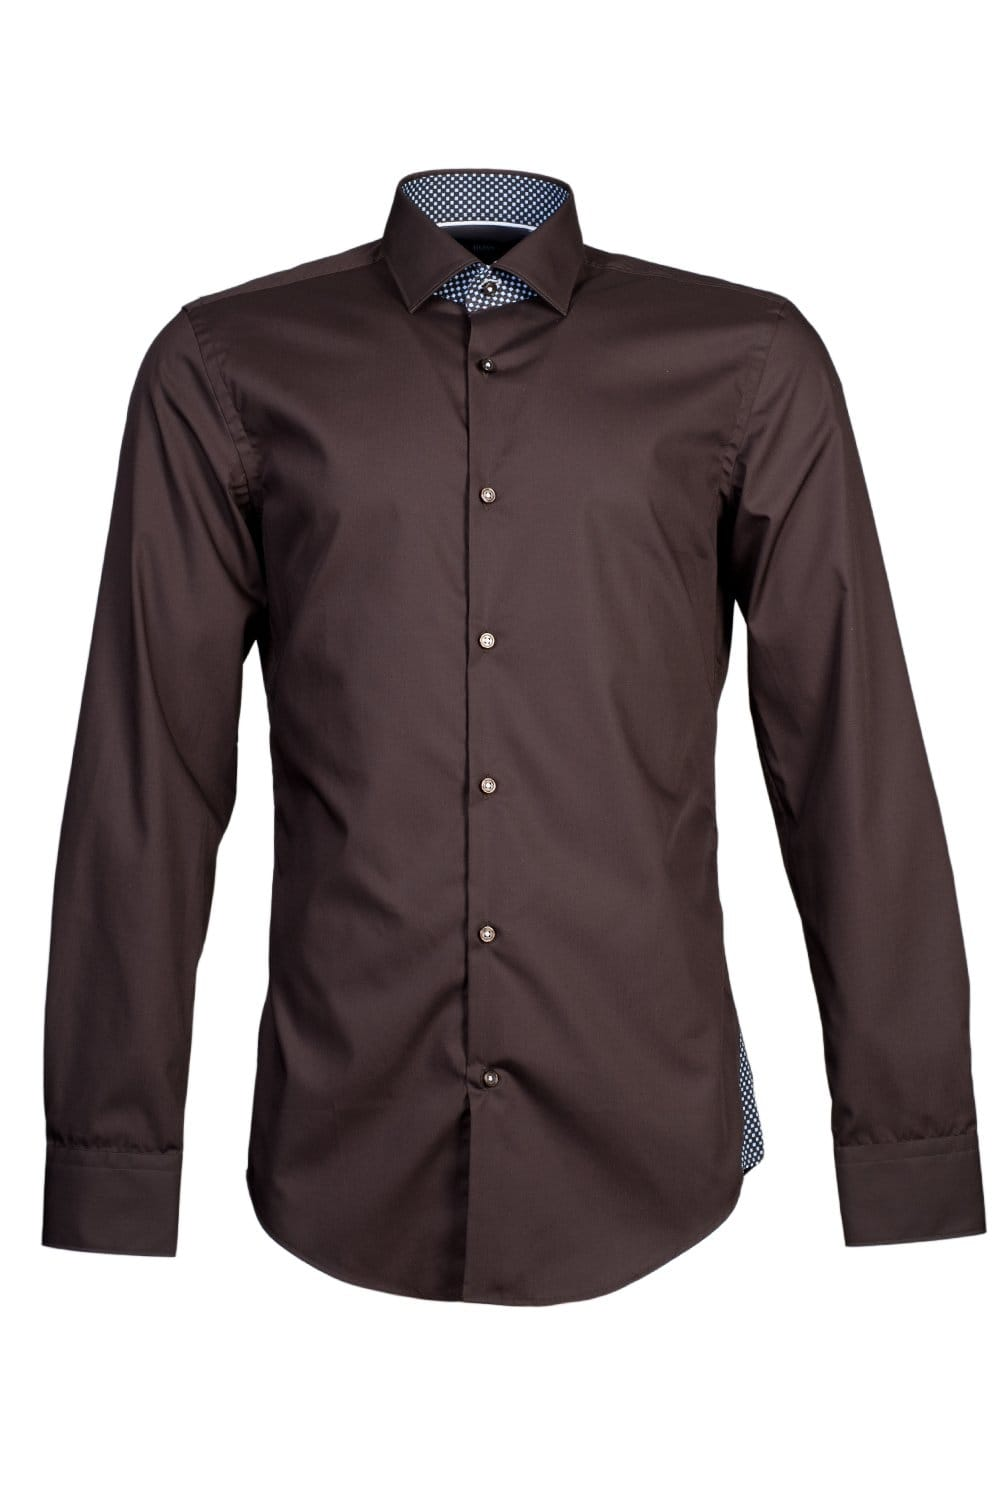 Hugo Boss Slim Fit Shirt In Black Blue Brown White And